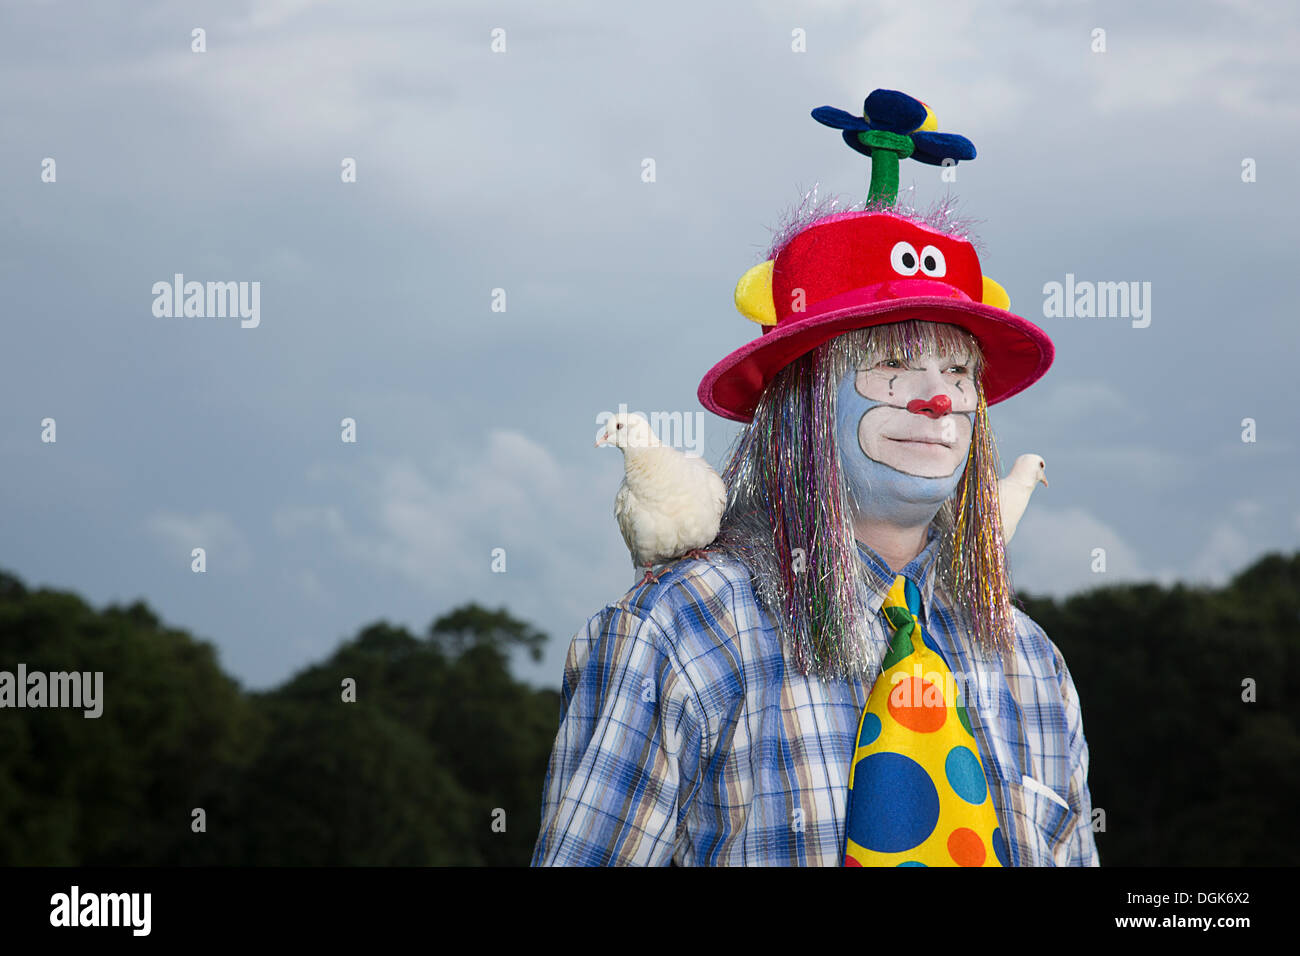 Portrait of clown with doves on shoulders - Stock Image